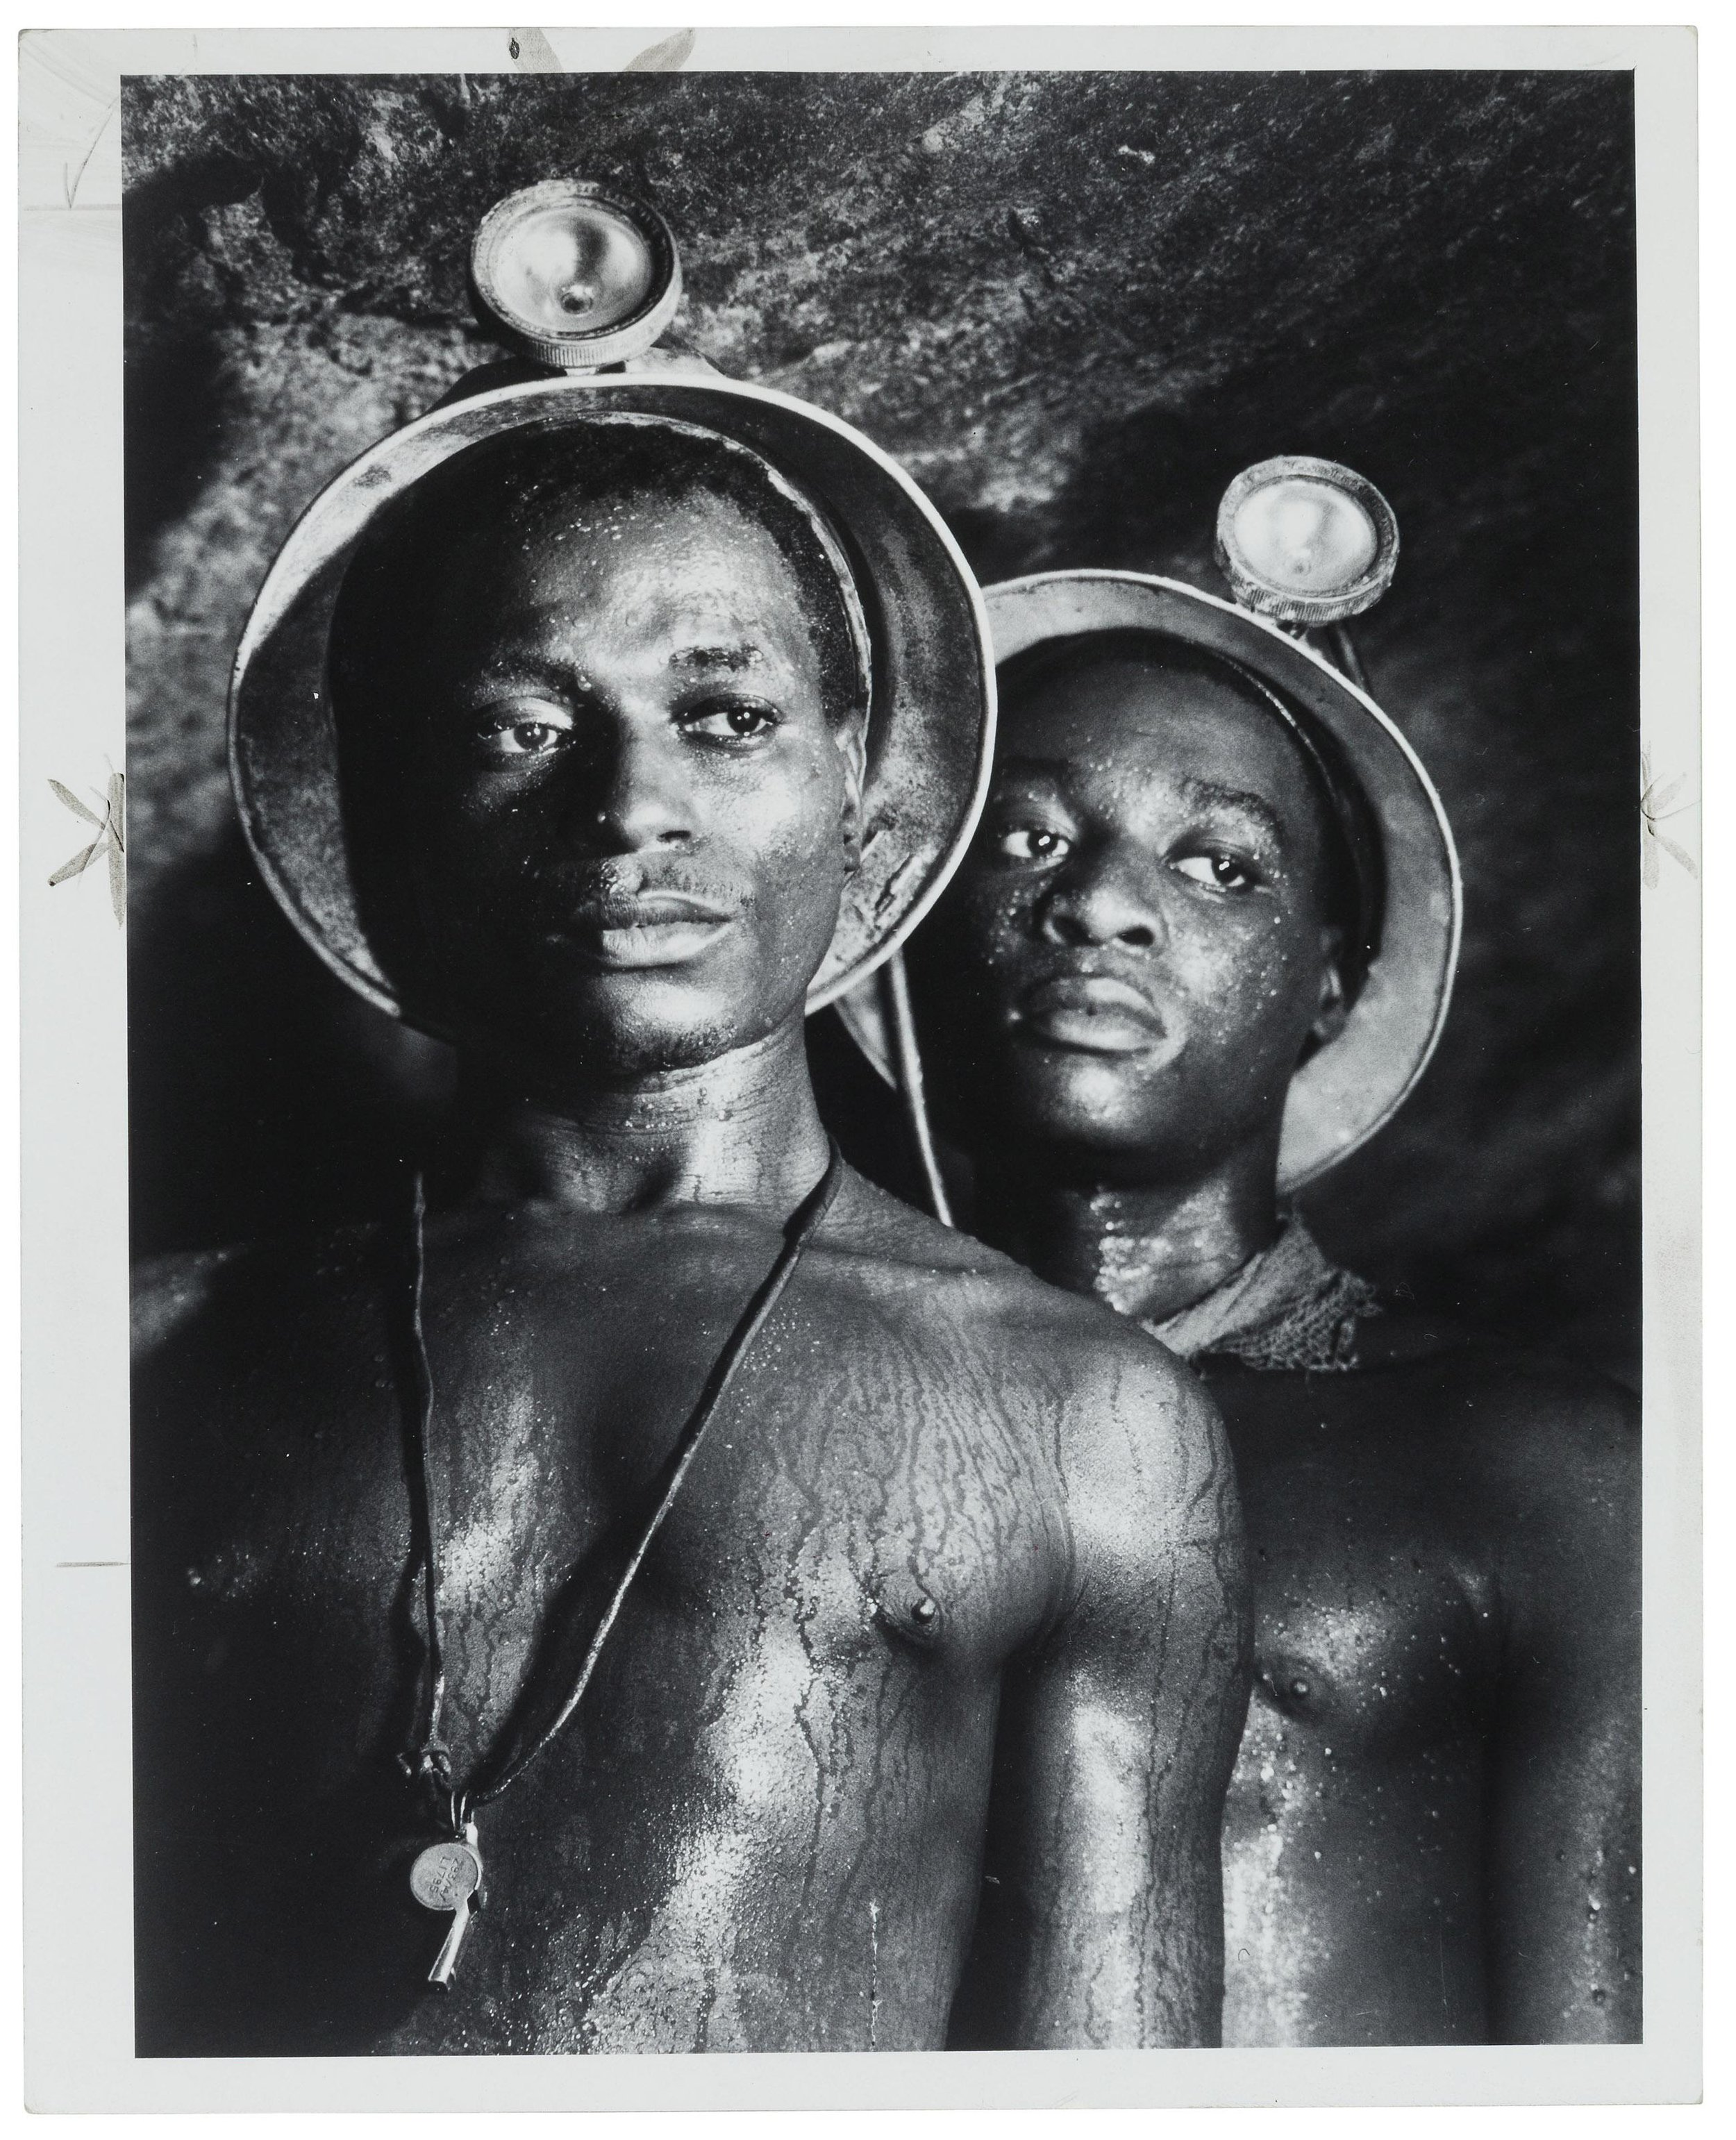 Gold Miners/South Africa by Margaret Bourke-White (1950)